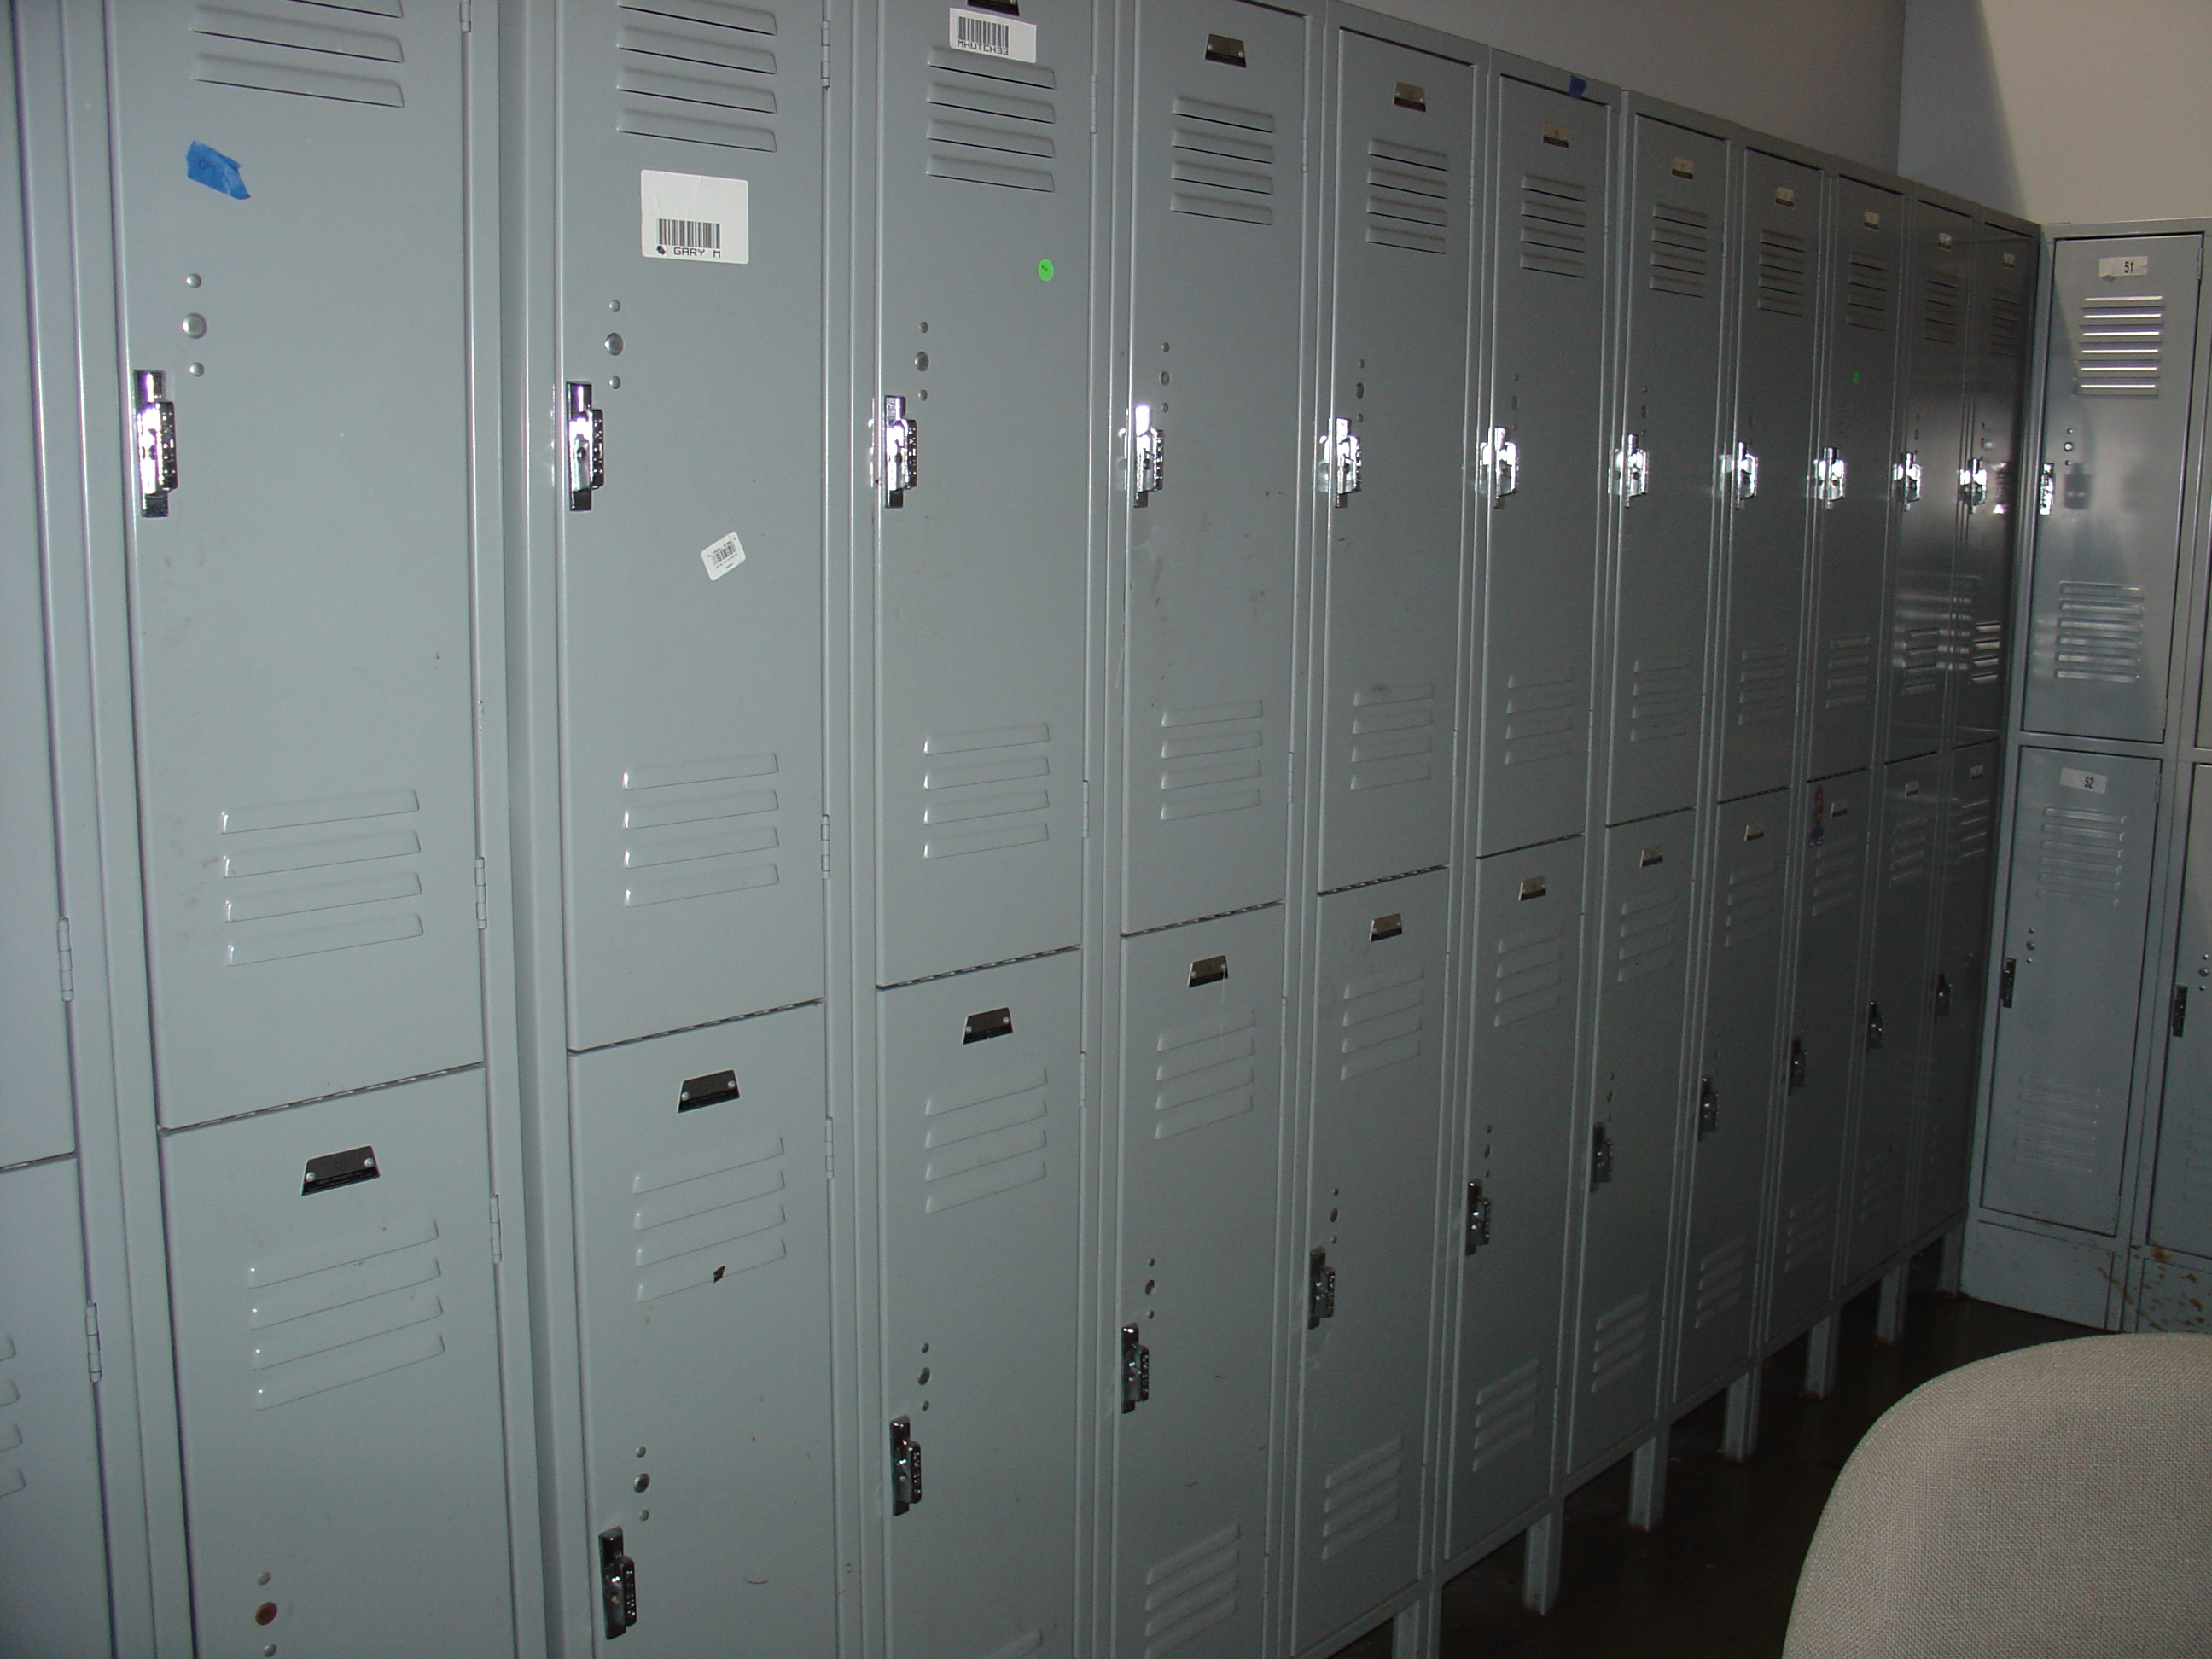 Brilliant Penco Lockers for Best Locker Choice: Penco Vanguard | Penco Lockers | Penco Corporation